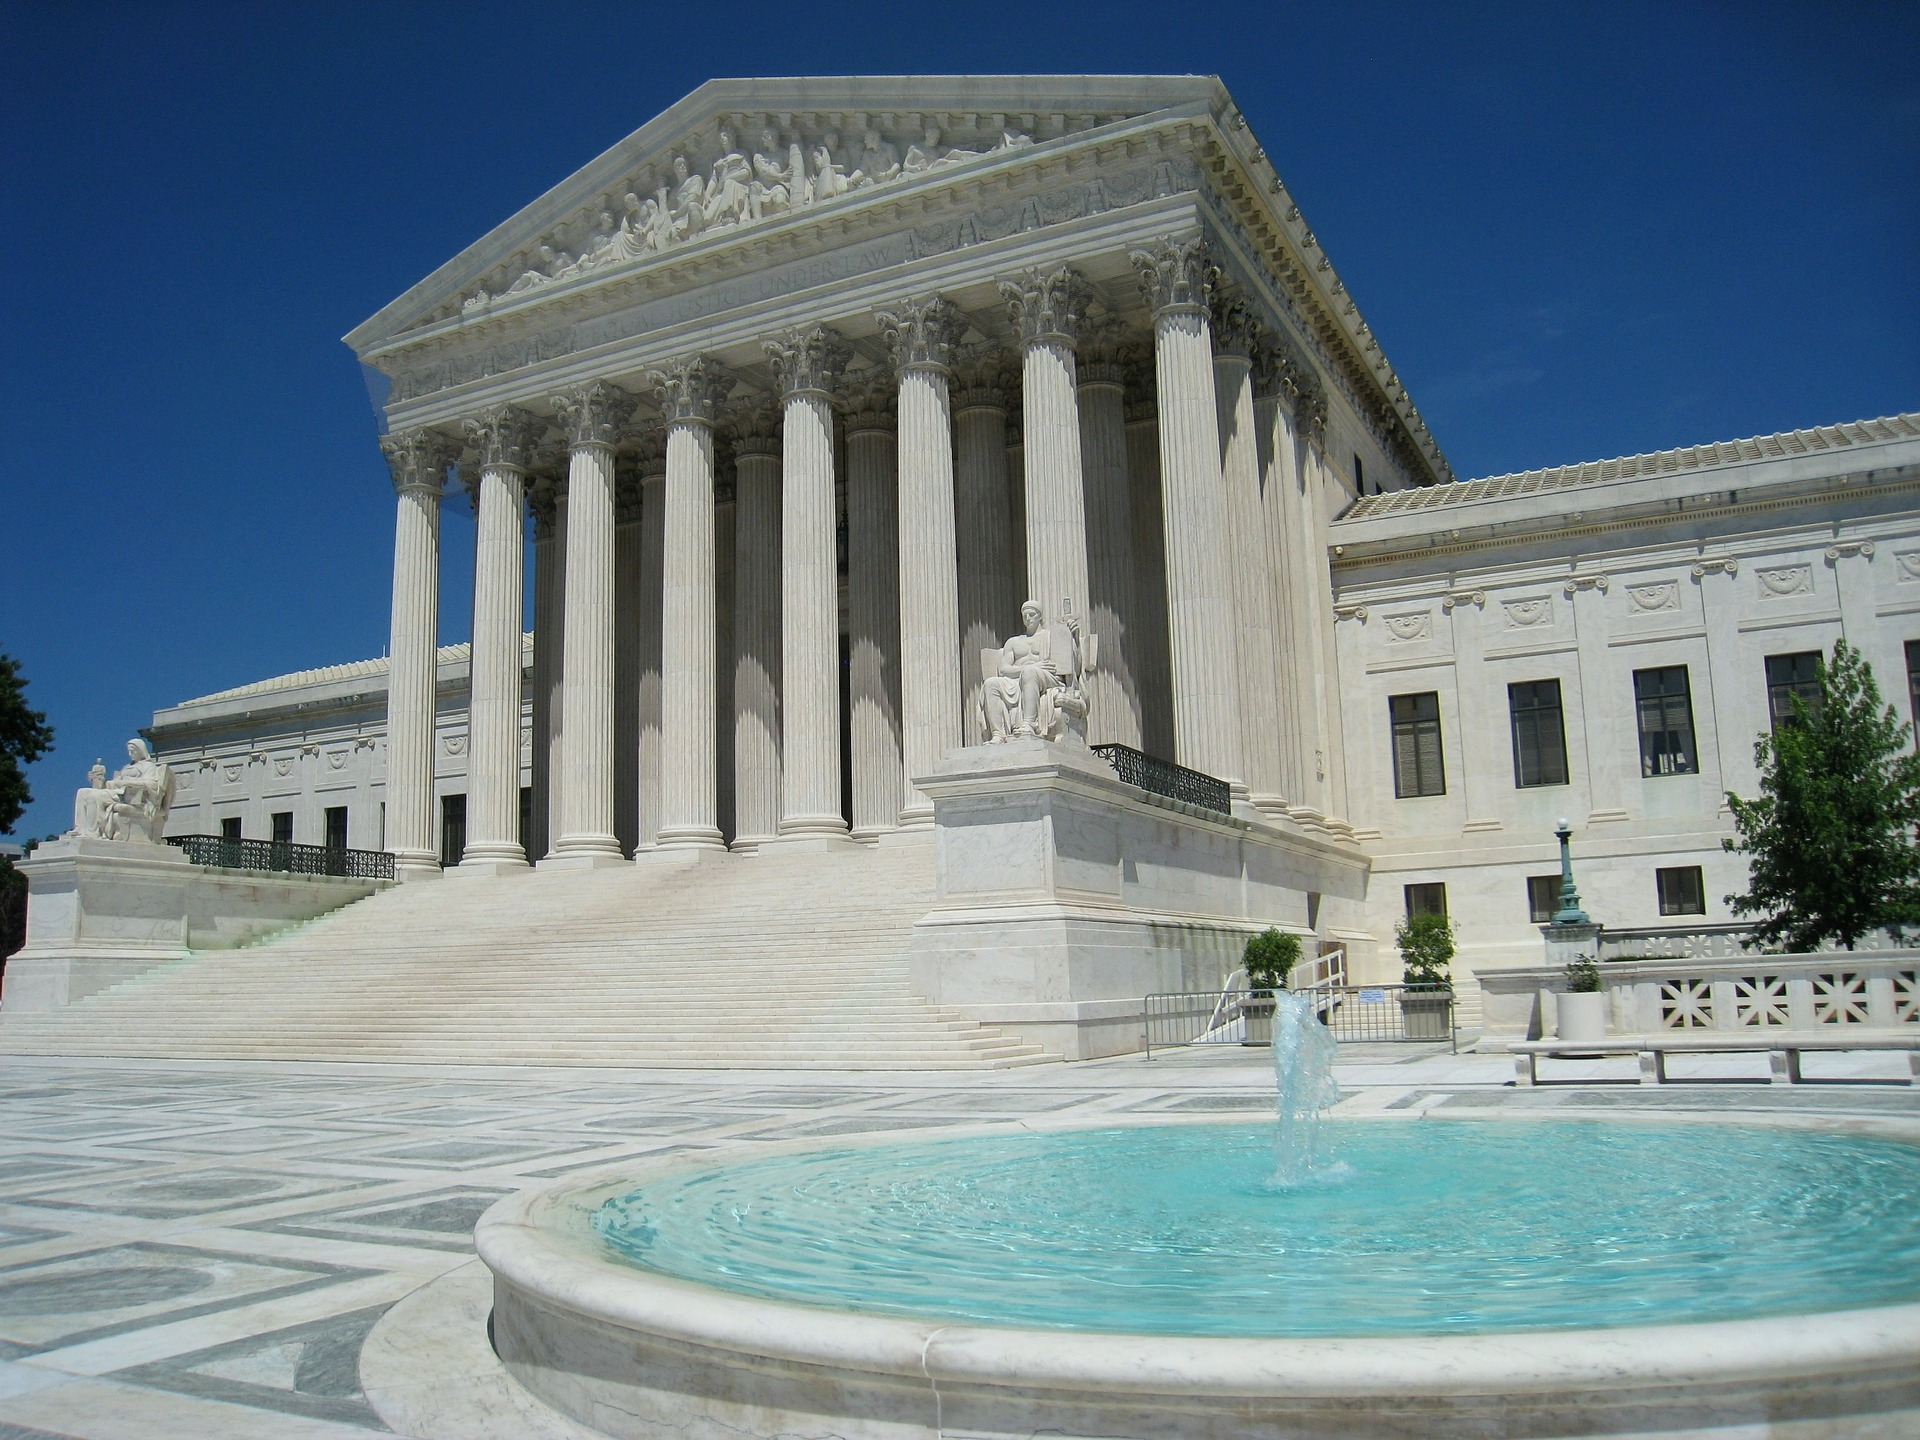 Image of Supreme Court building